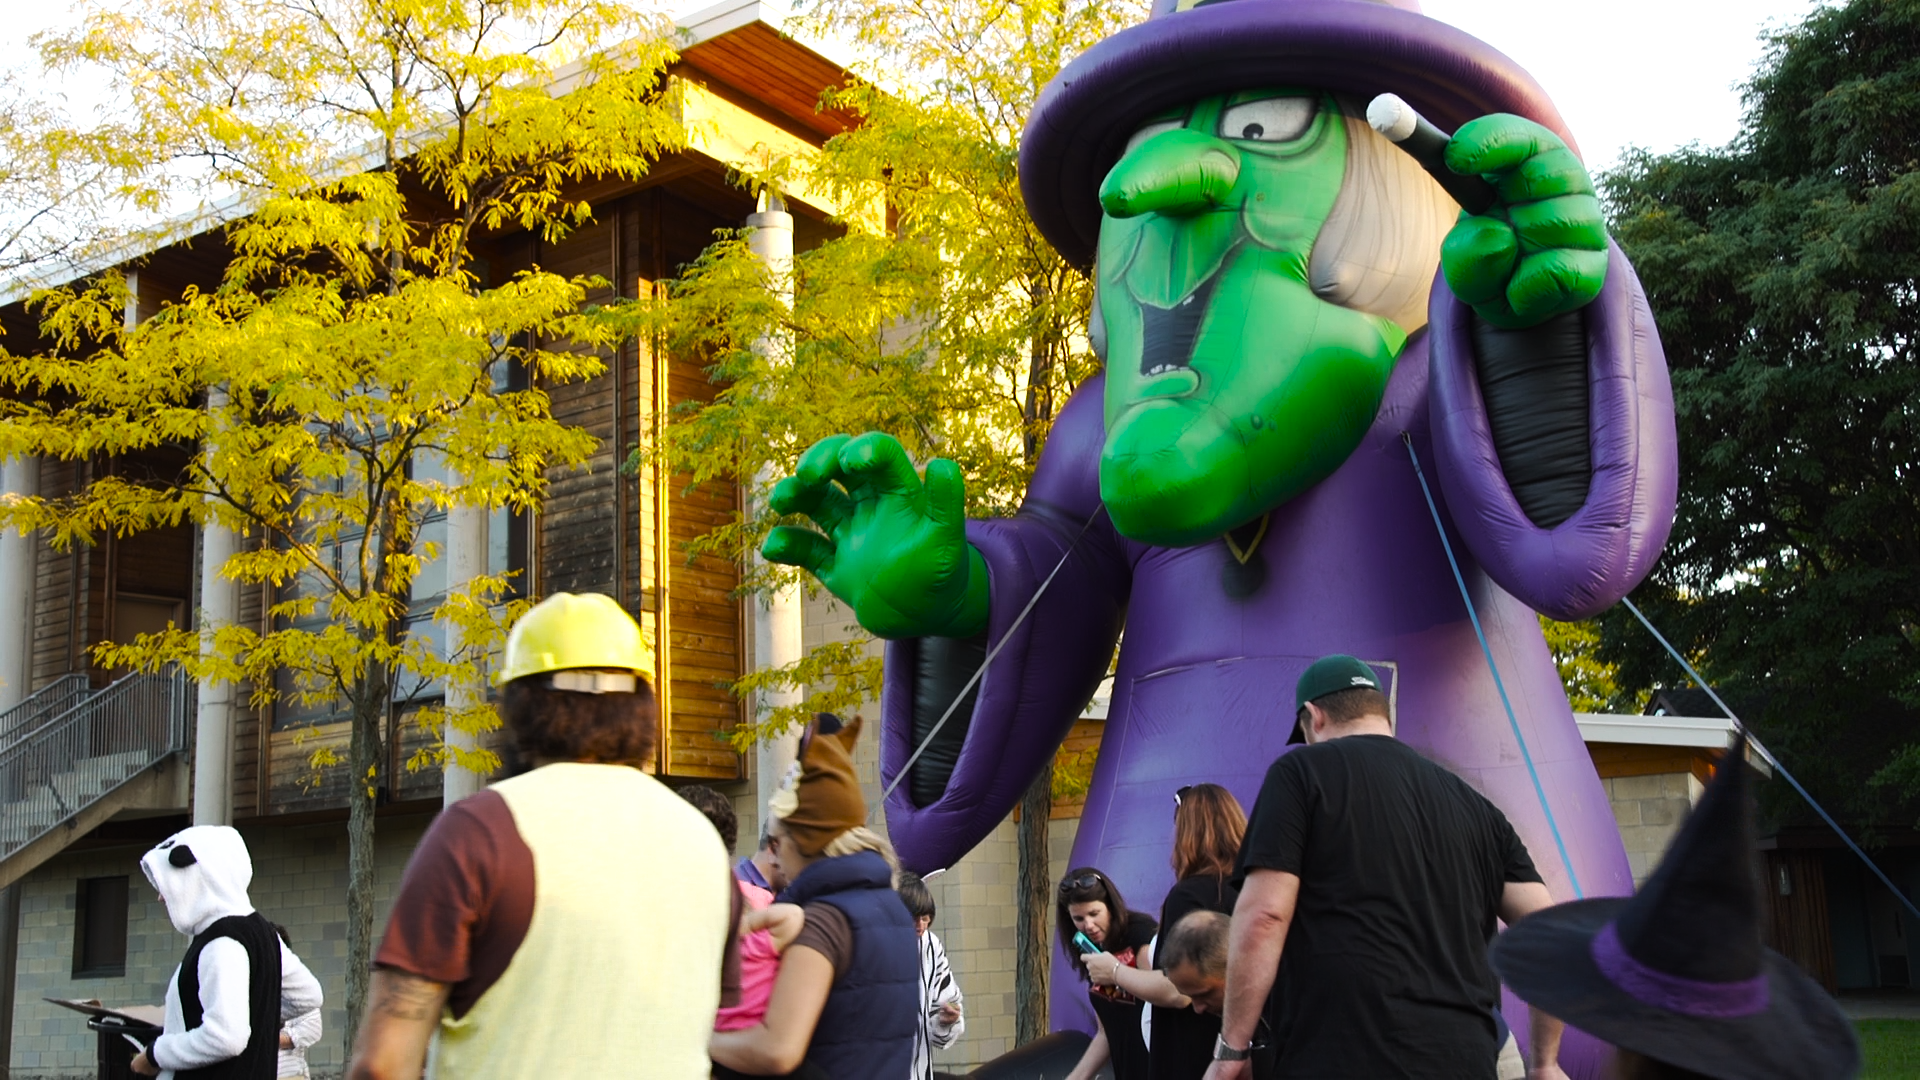 """Families, some dressed in Halloween costumes walk down the Trick or Treat Trail at the Detroit Zoo's """"Zoo Boo"""" An inflatable witch stand in the background next to a tree with yellow leaves."""